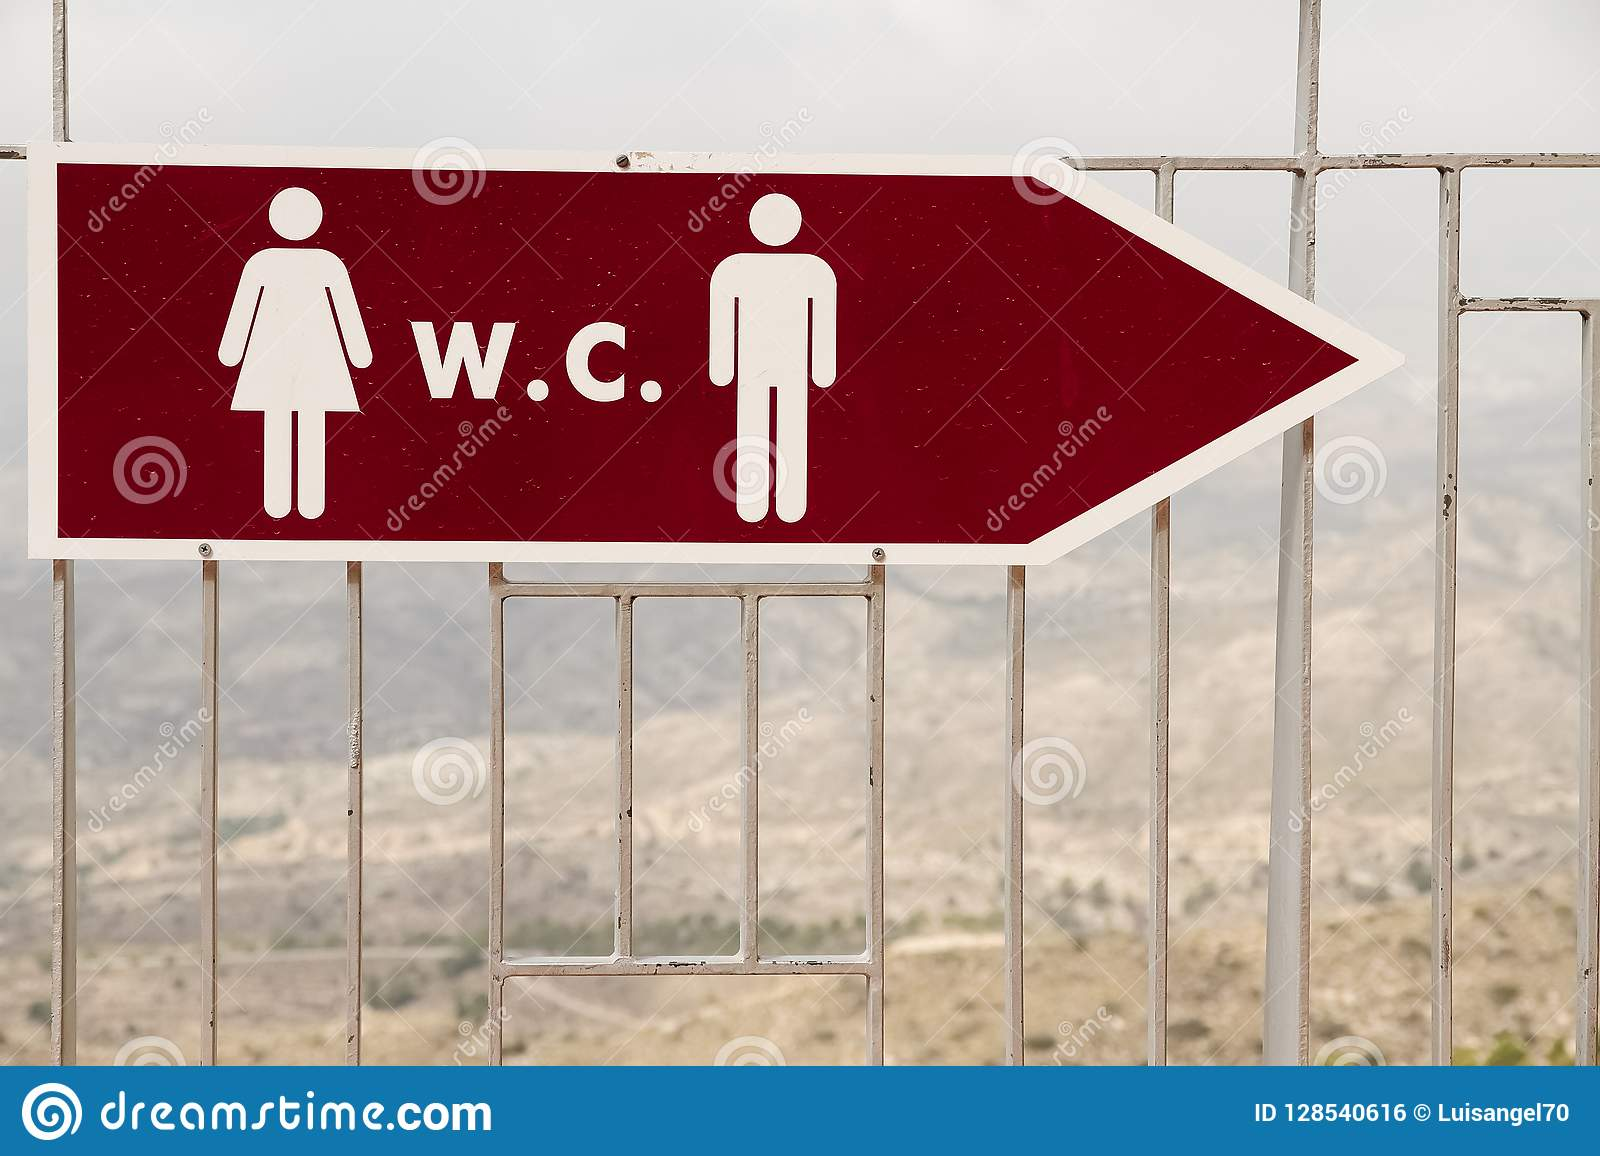 Sign indicating the location of the bathrooms in a mountain area